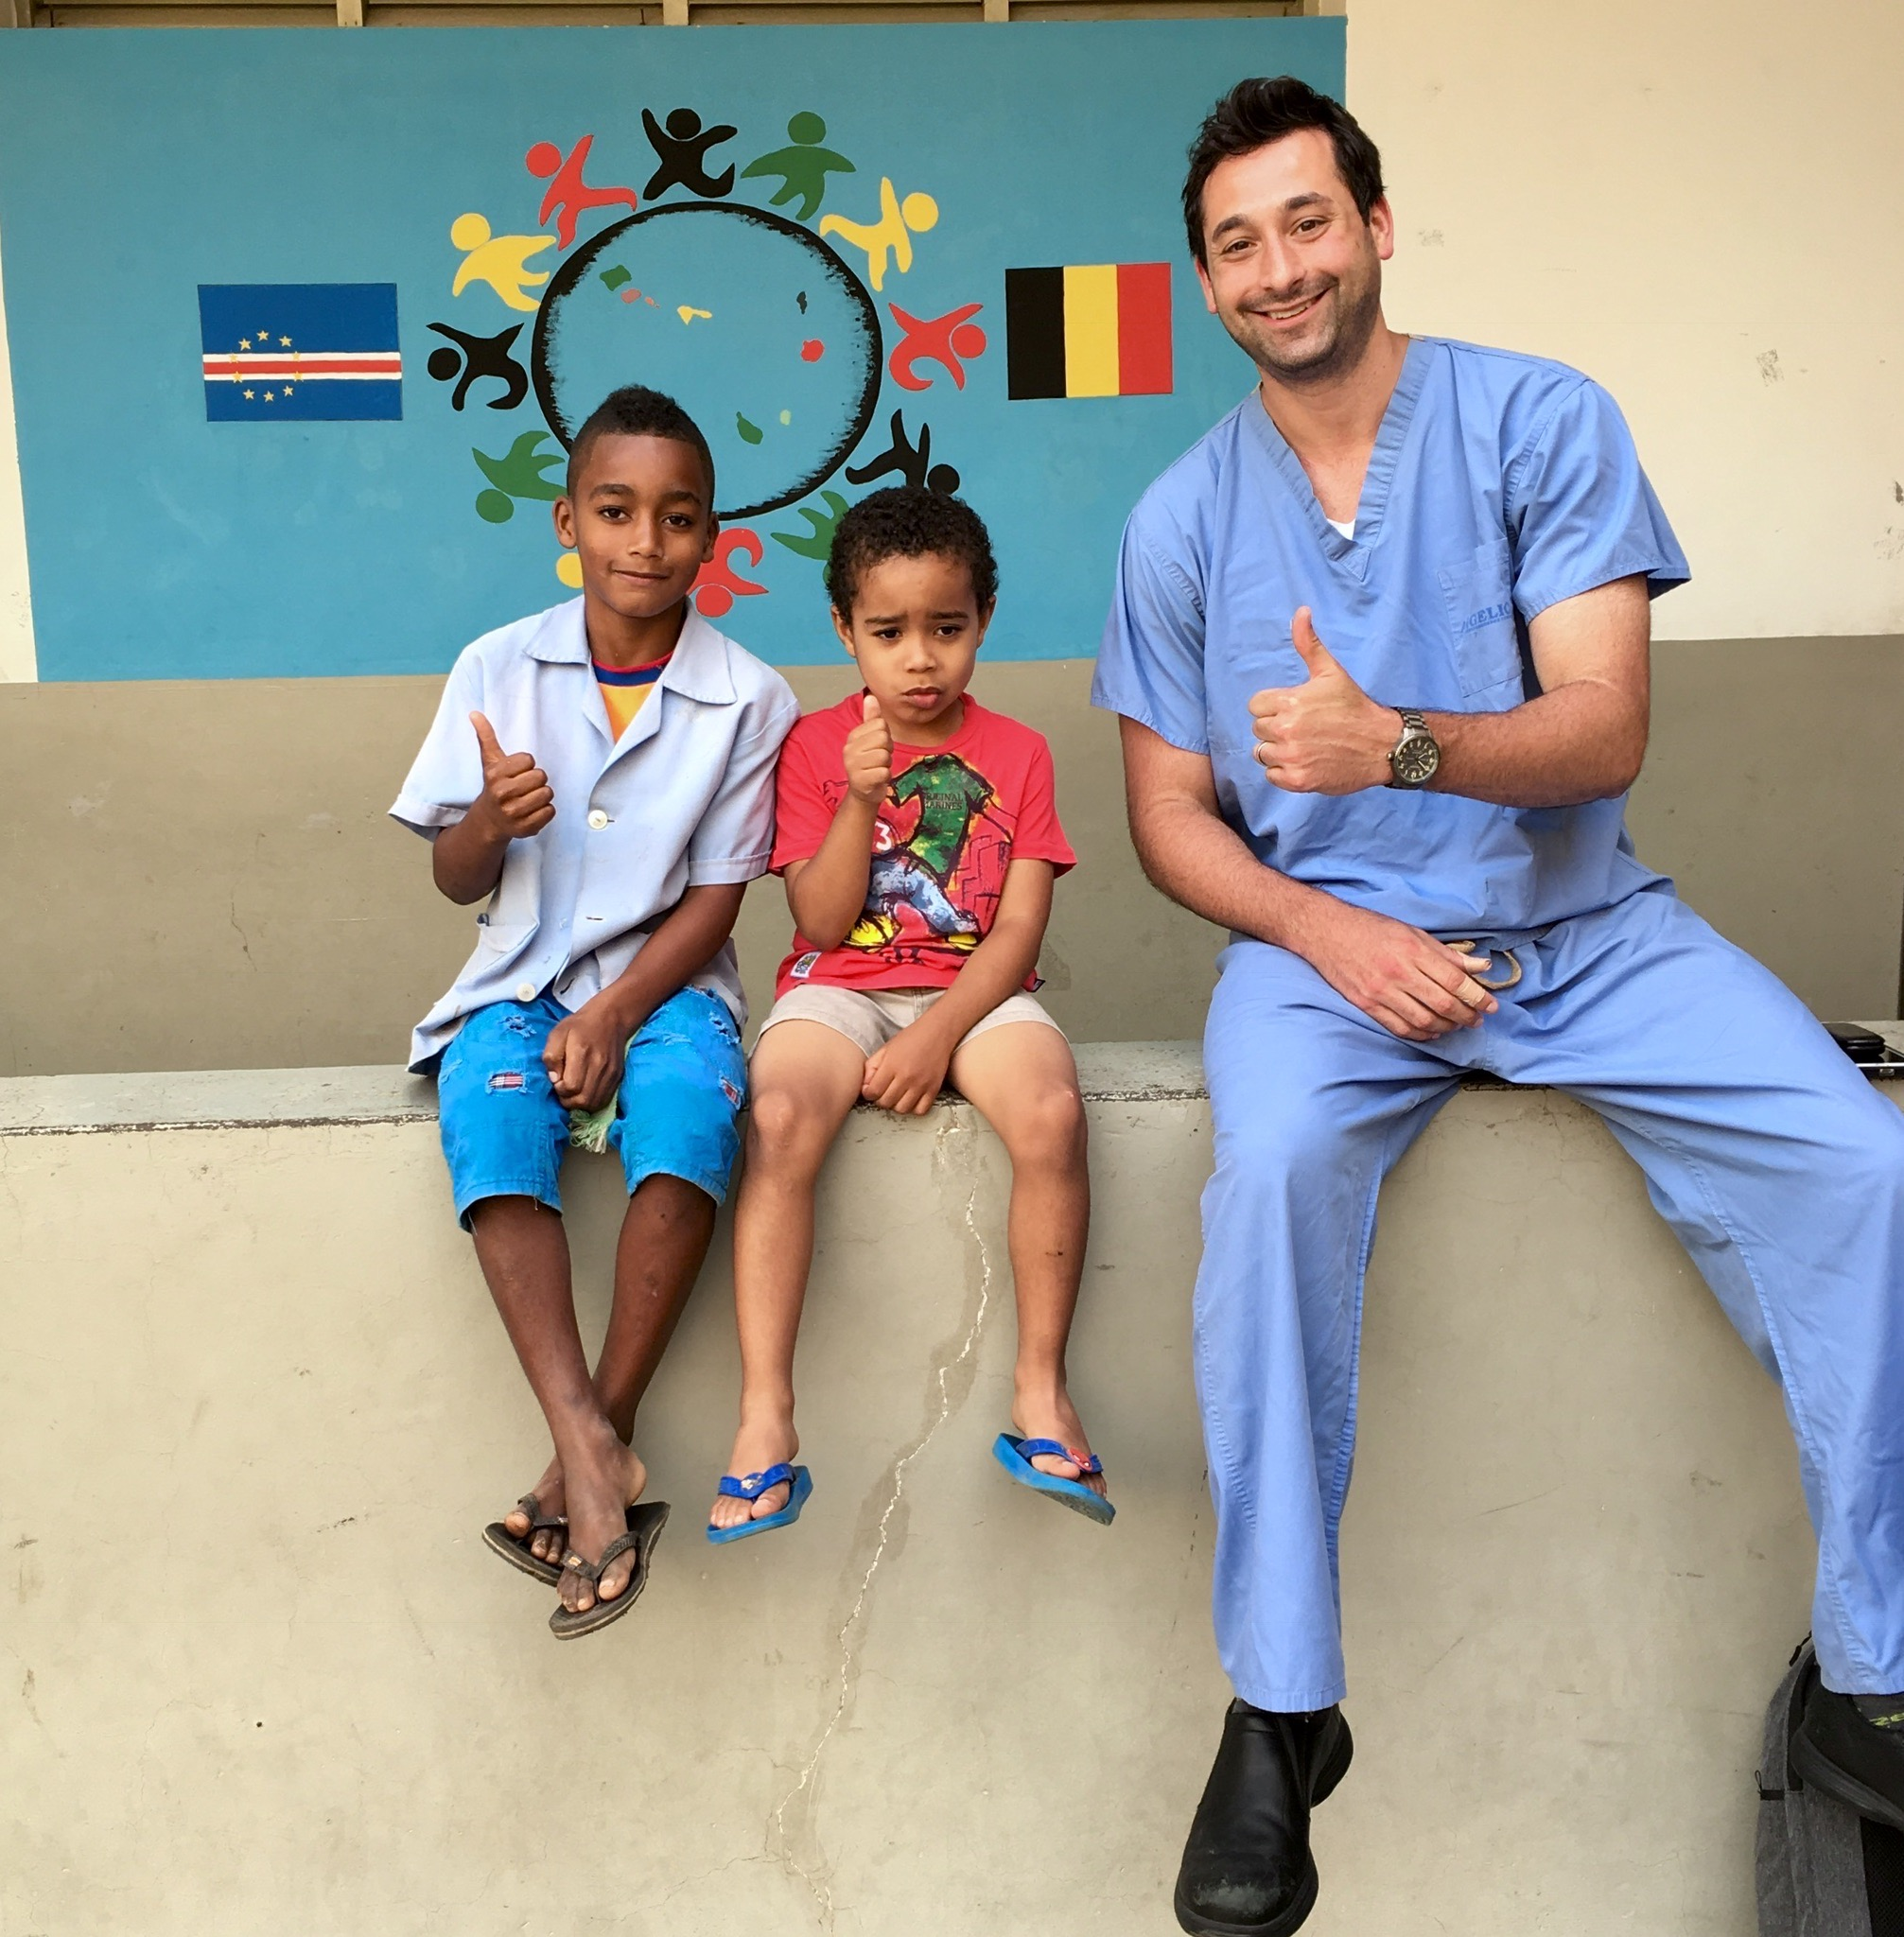 Dr  Adam visited the children of Cape Verde on a dental outreach